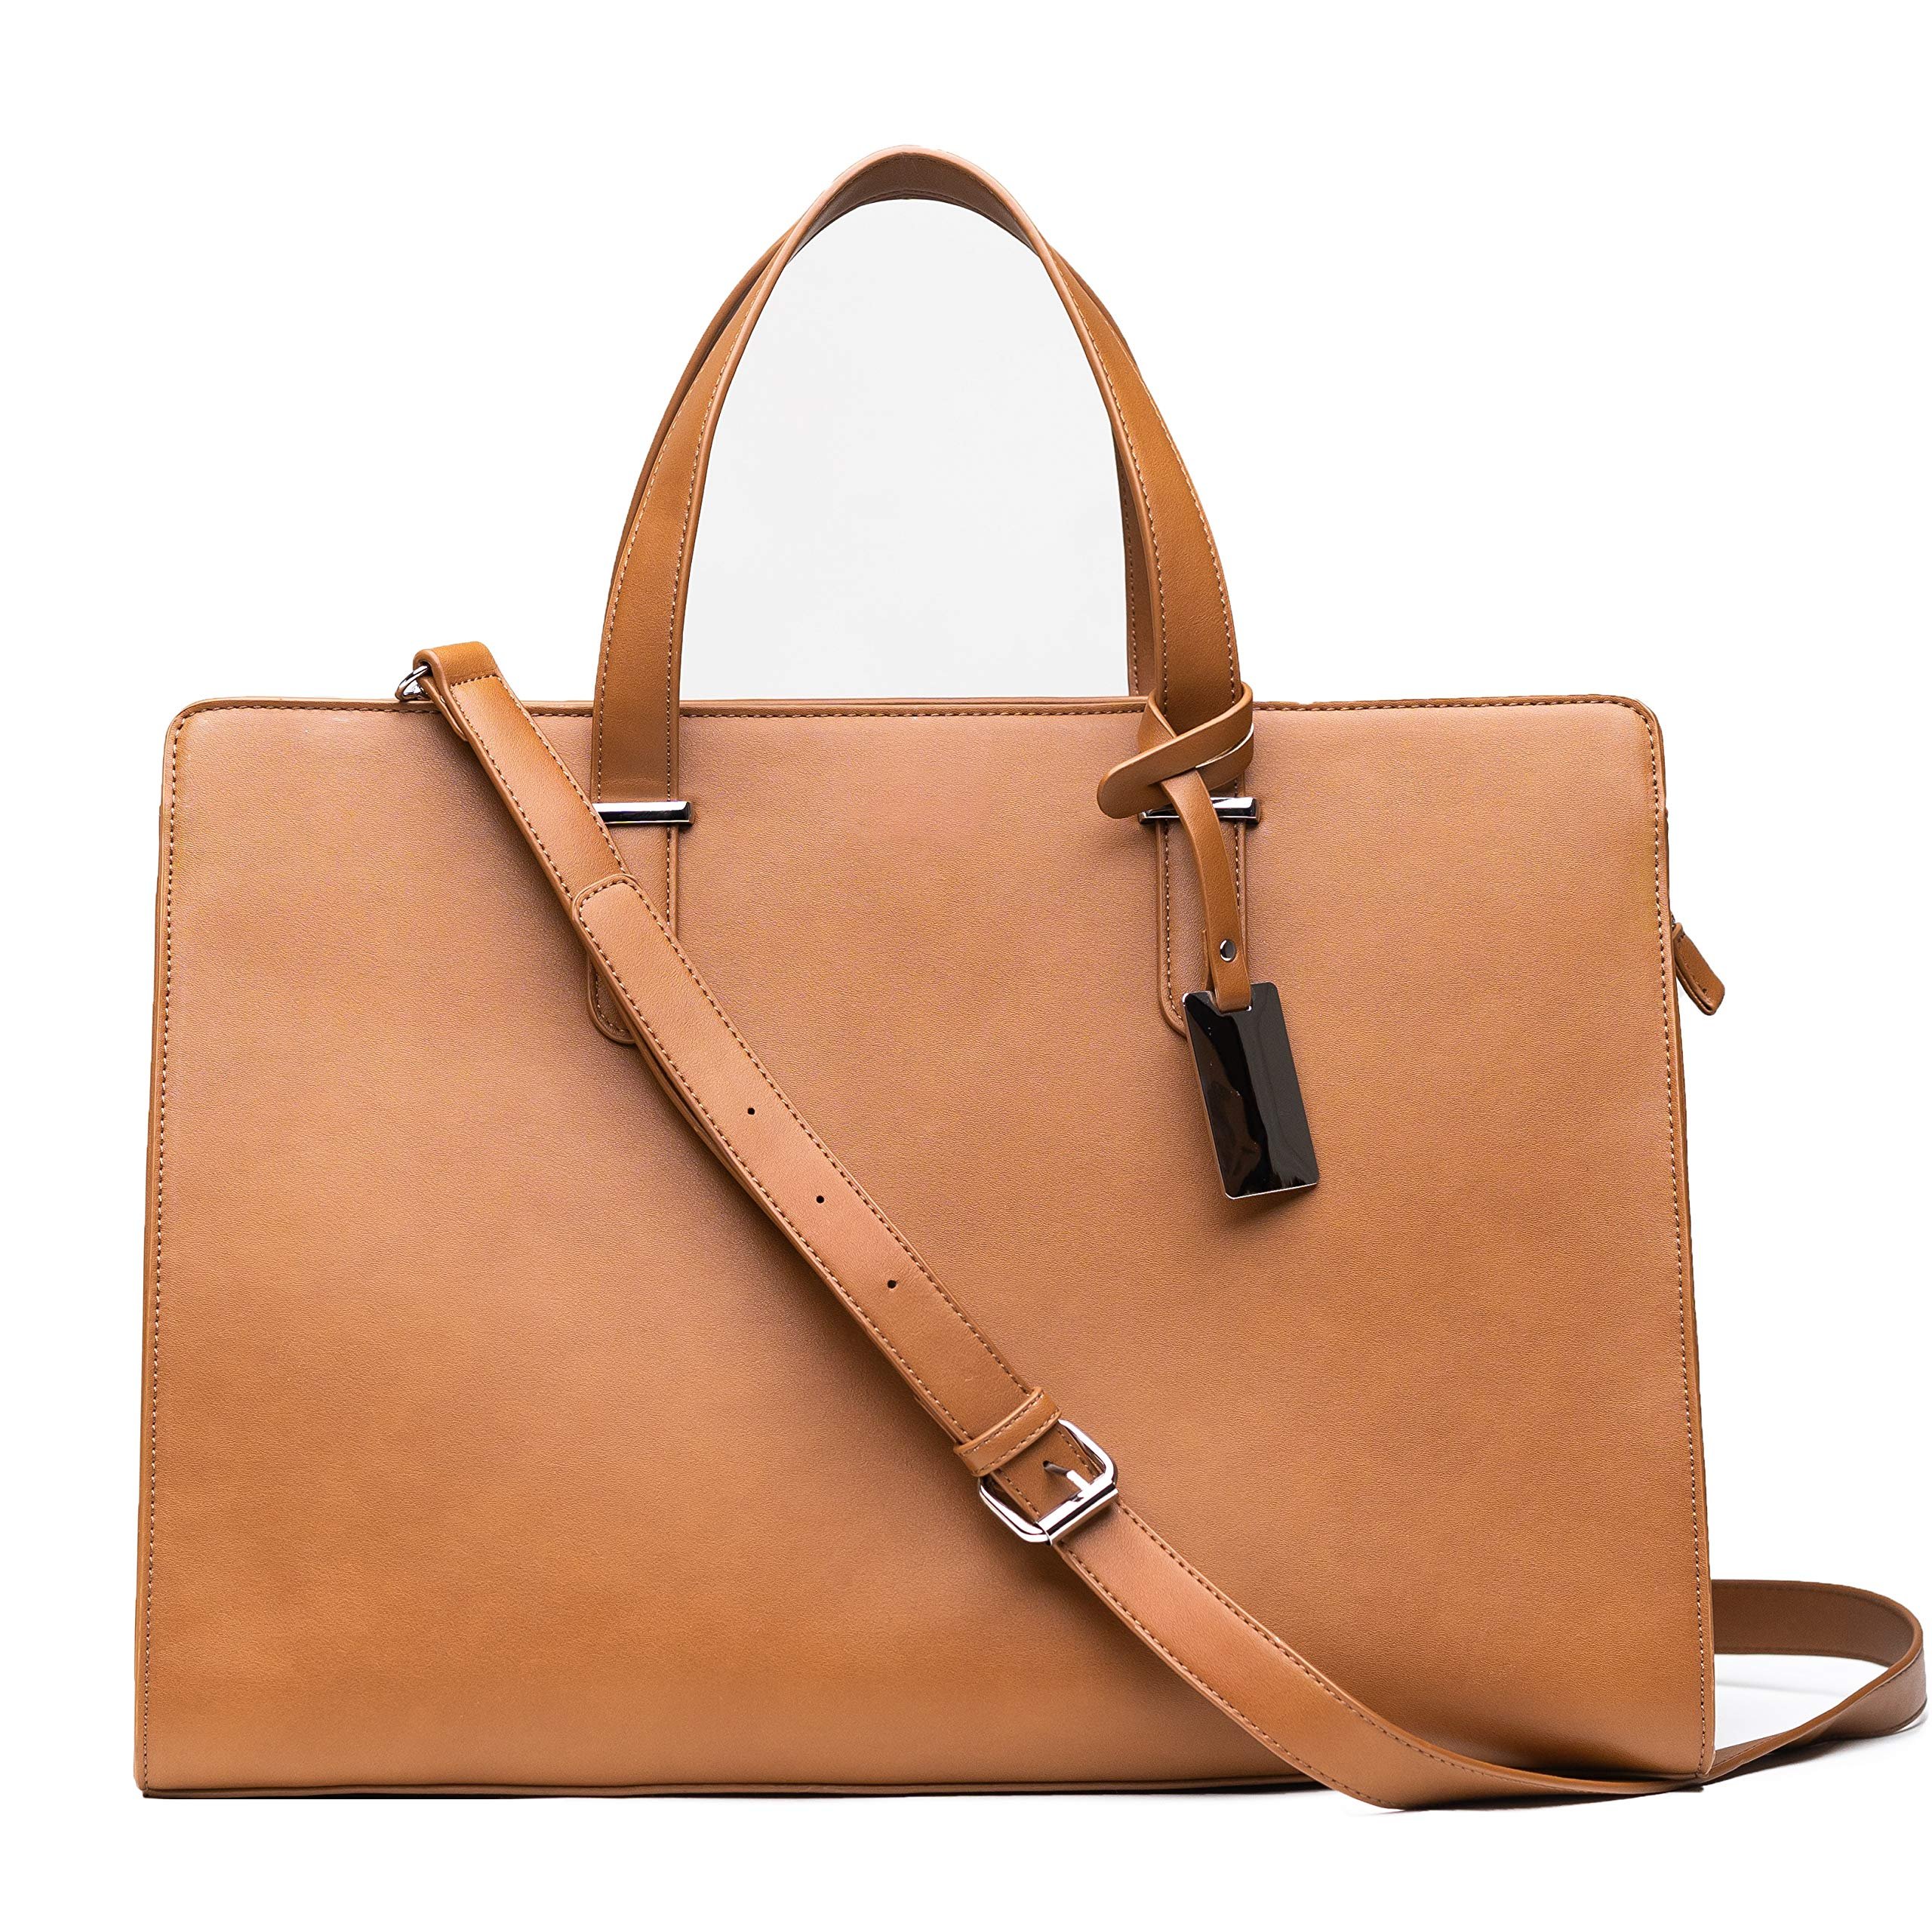 Computer Bag for Women - Ideal Laptop Tote Bag to Keep Your Business Documents, Laptop & Notebook Safe, Unique & Practical Laptop Accessories (Brown)